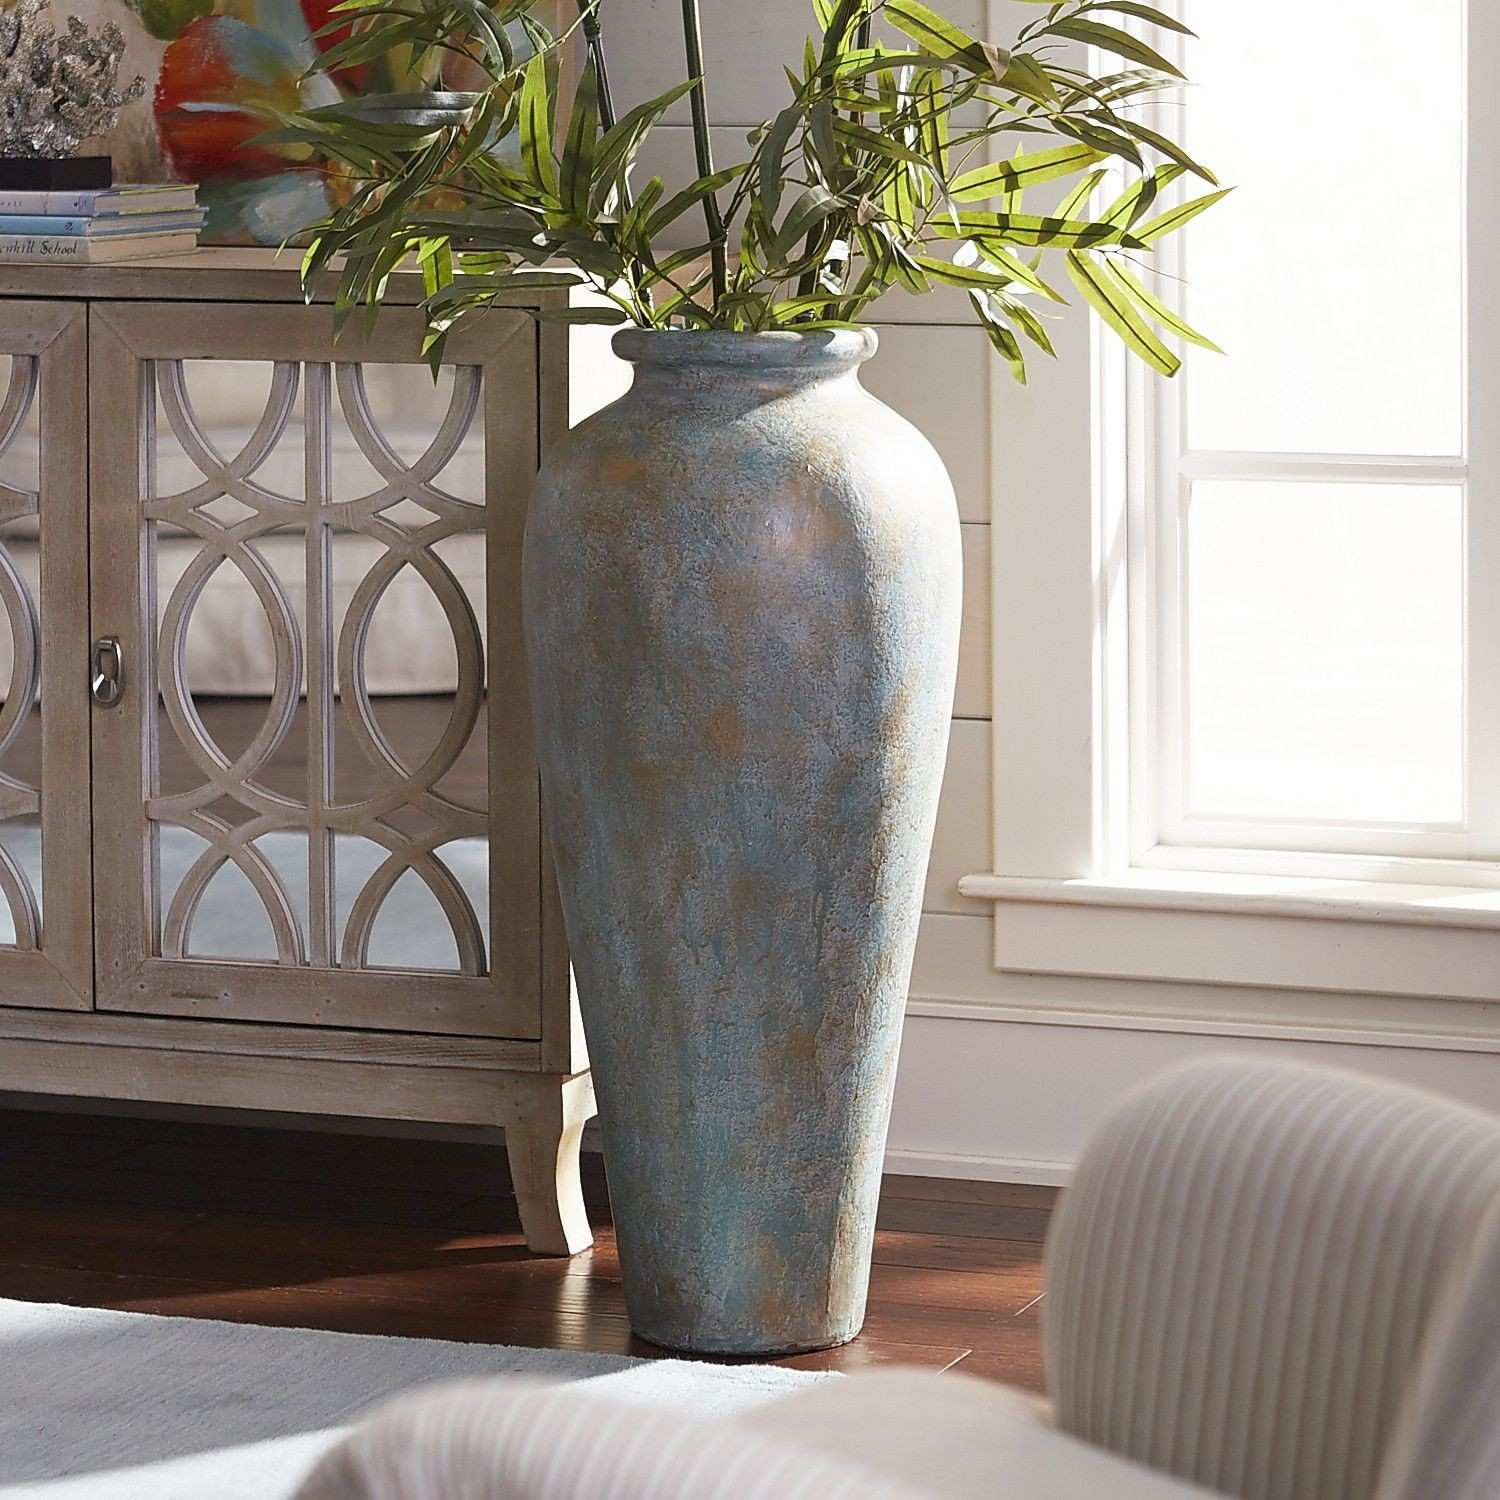 large modern vase of decorating ideas for vases elegant il fullxfull nny9h vases flower intended for decorating ideas for vases best of blue green patina urn floor vase of decorating ideas